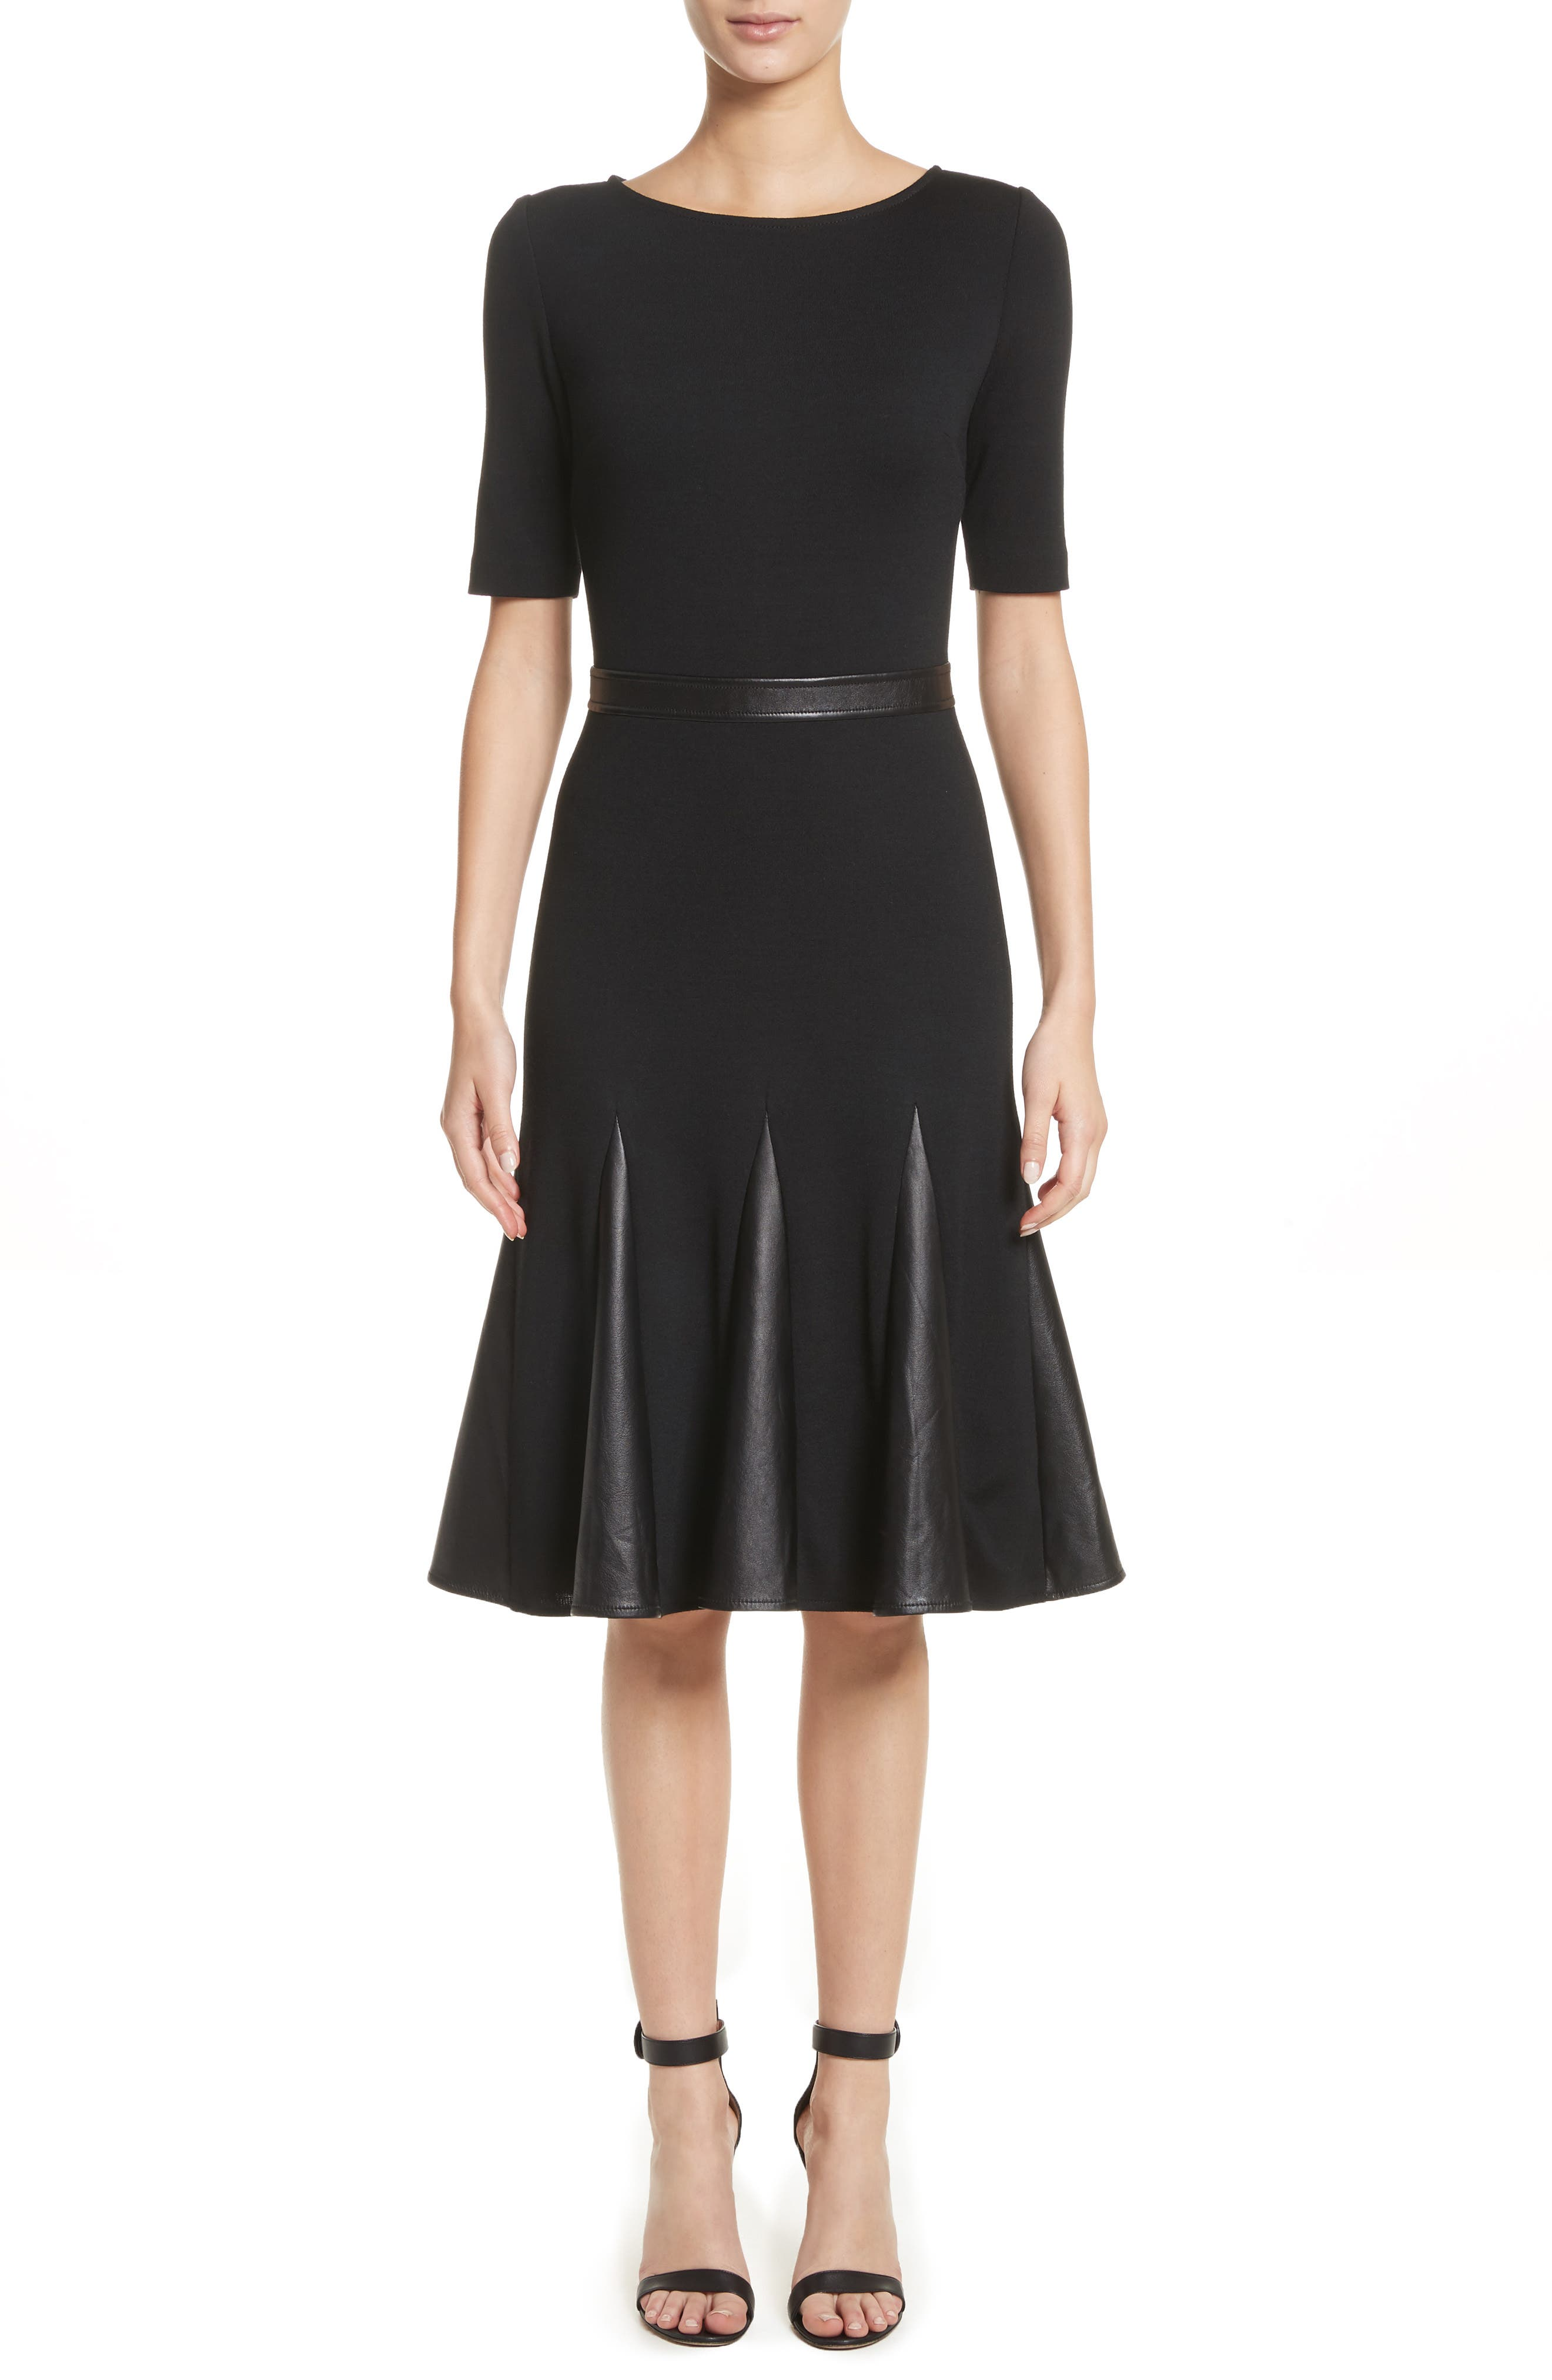 Alternate Image 1 Selected - St. John Collection Pleated Milano Knit & Leather Dress